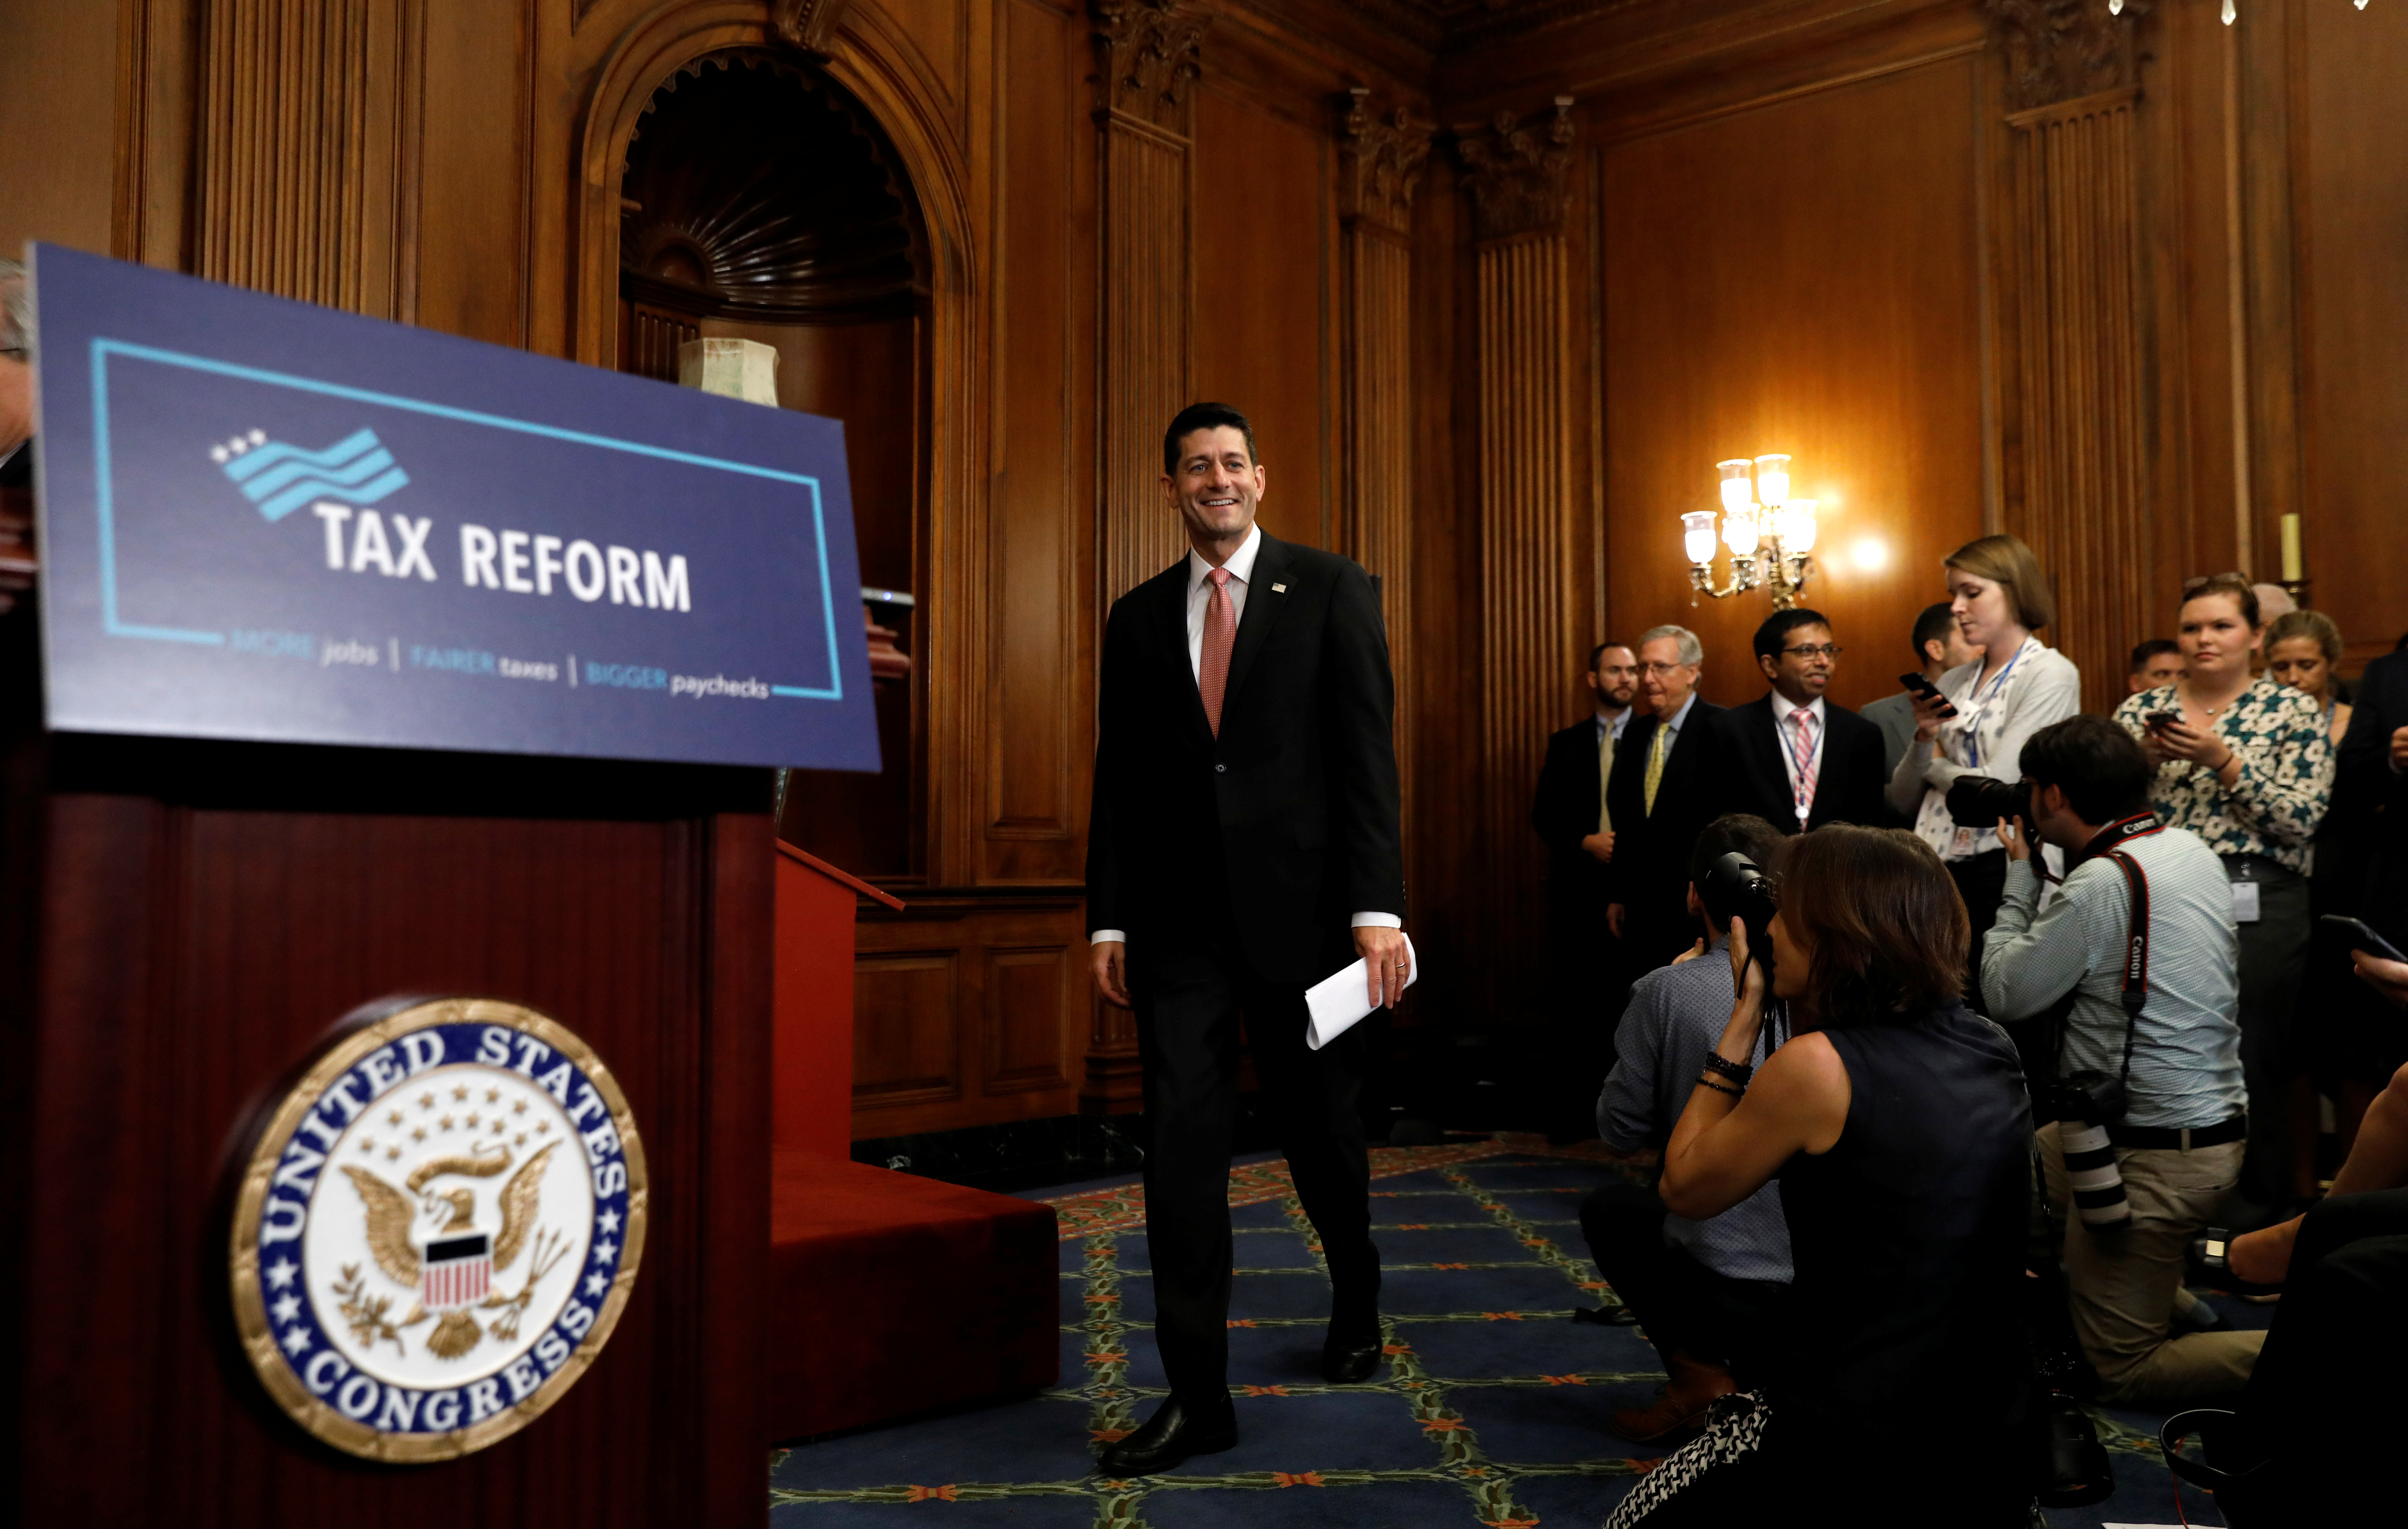 Speaker of the House Paul Ryan arrives to speak about the Republican tax plan in the U.S. Capitol in Washington, U.S., September 27, 2017. REUTERS/Kevin Lamarque - RC1C286A54B0